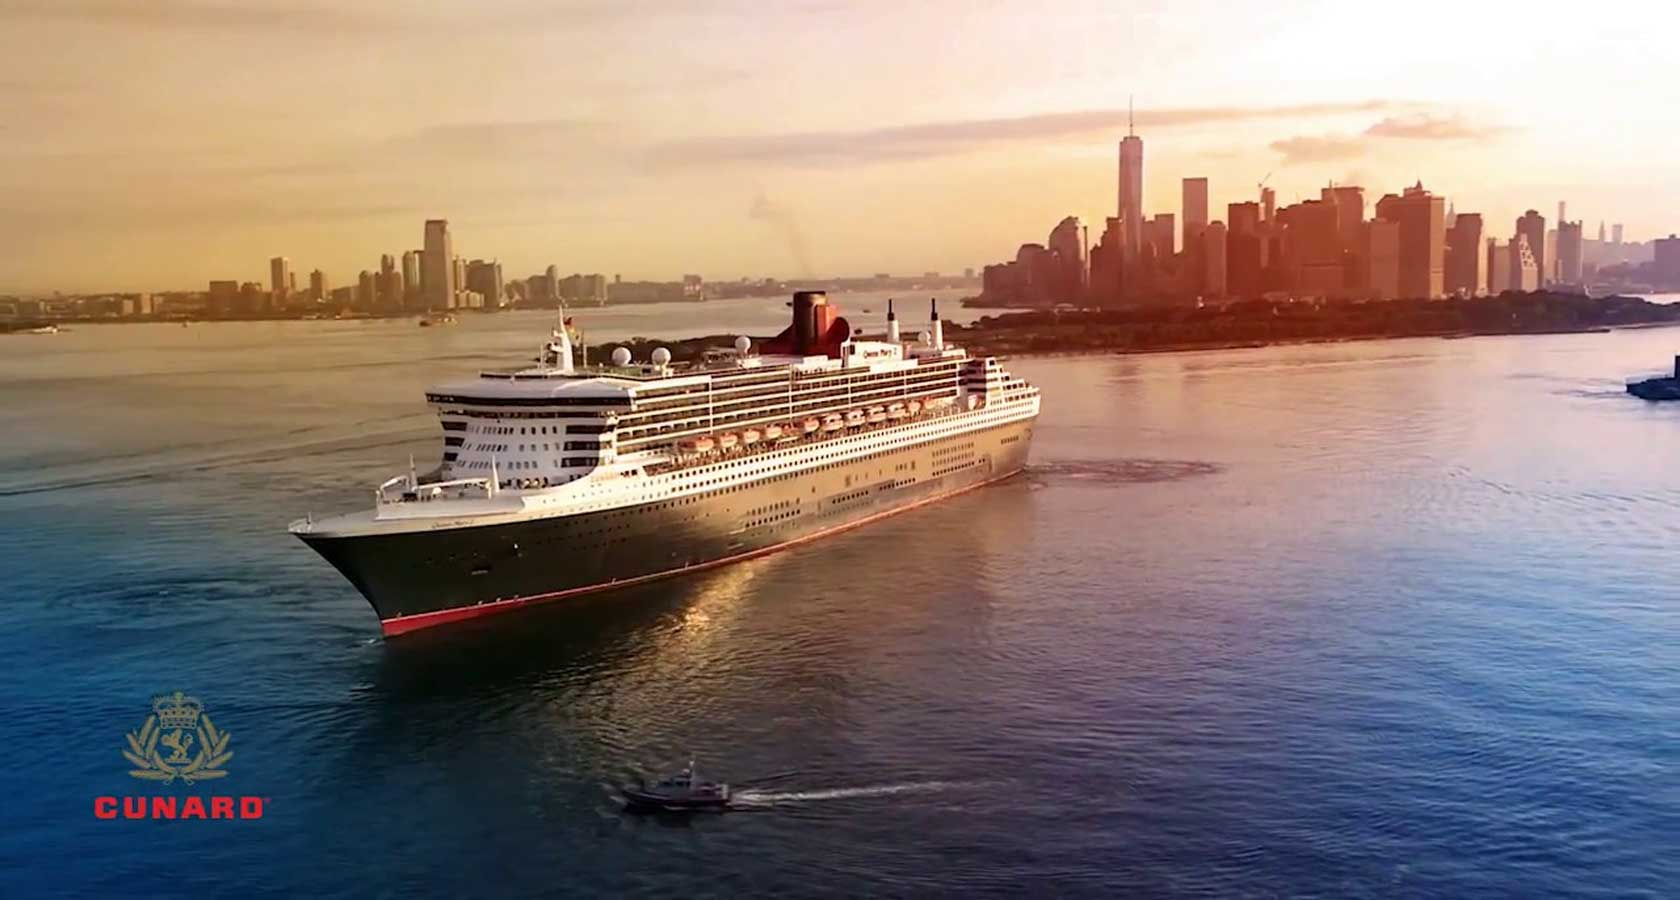 TRANSATLANTIC HONEYMOON CRUISE Cunard